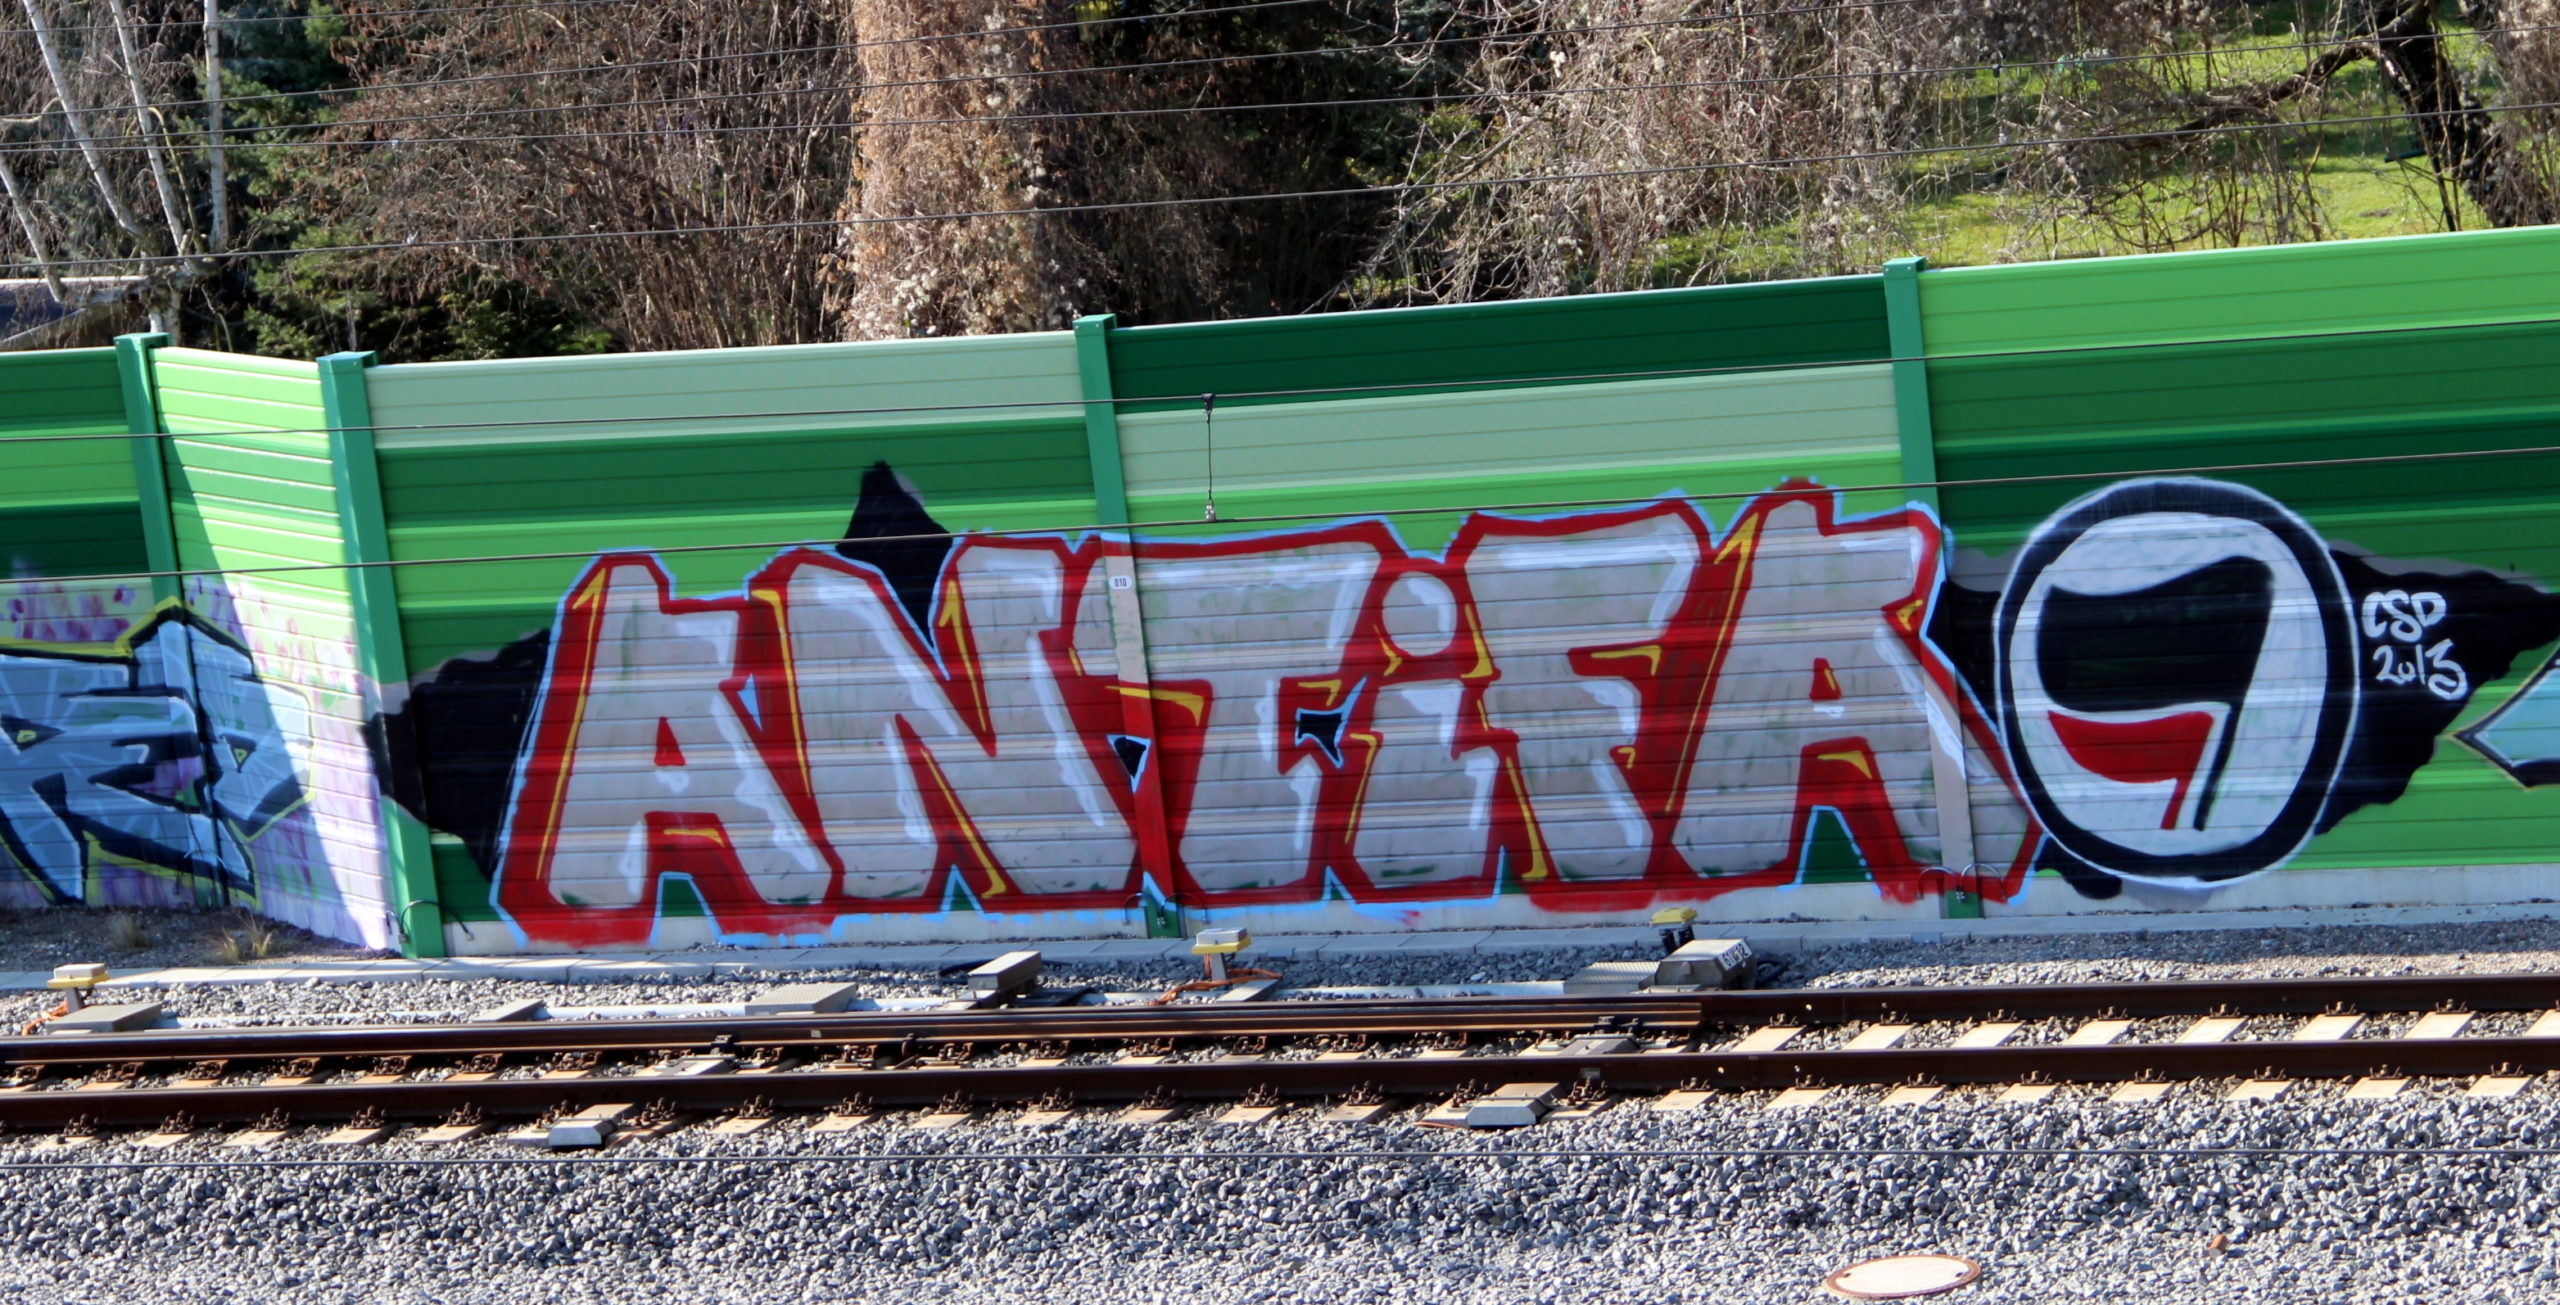 We're all antifa after the coup attempt. Photo: Graffiti along a railway line reads ANTiFA with the familiar black and red flags of the antifascist movement.